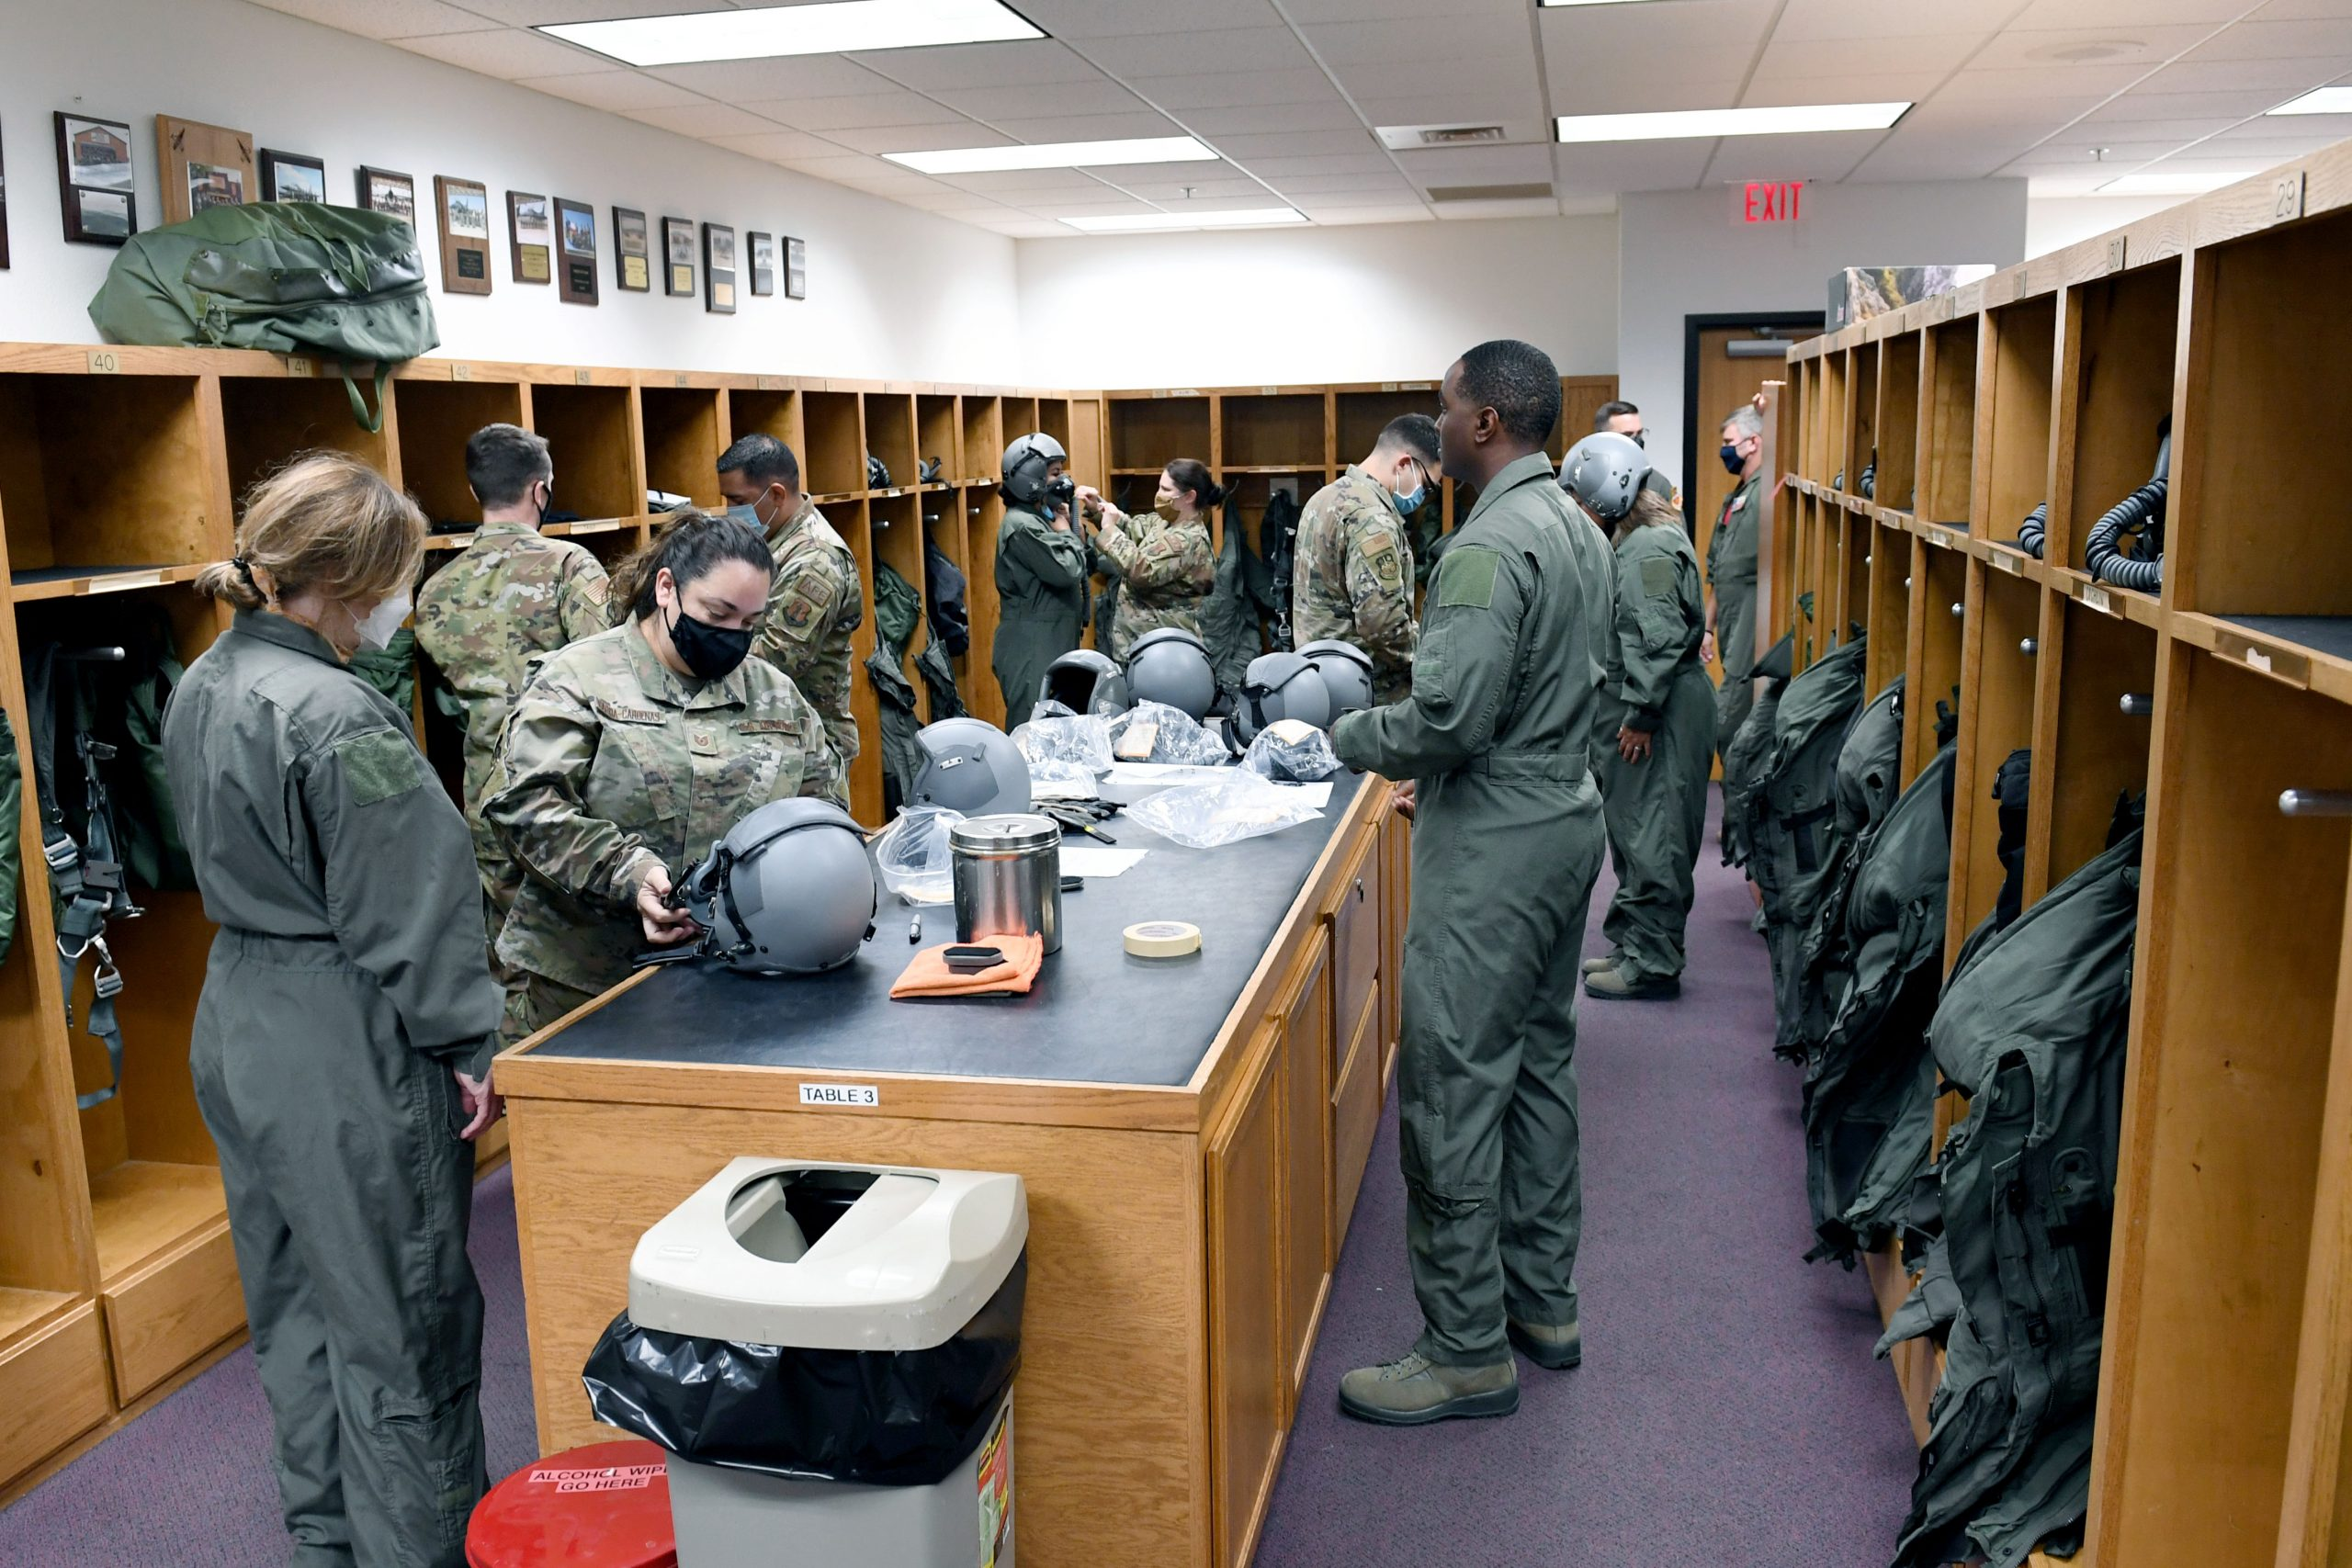 Air Force personnel help outfit spouses for a high-speed taxiing experience in an F-16 fighter jet.